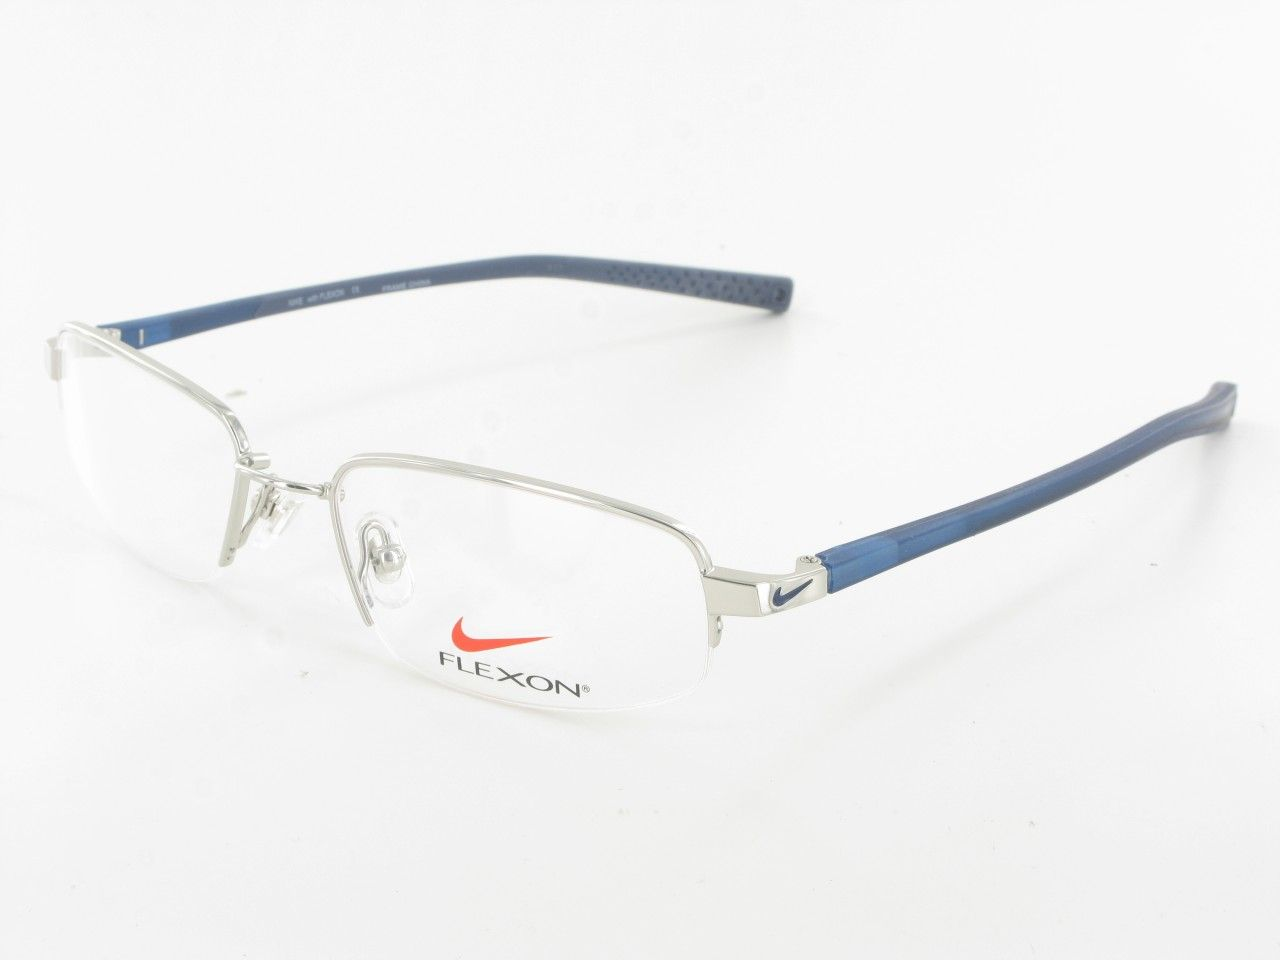 new nike flexon eyeglass frames nk 4182 sporty flexible mens womens images